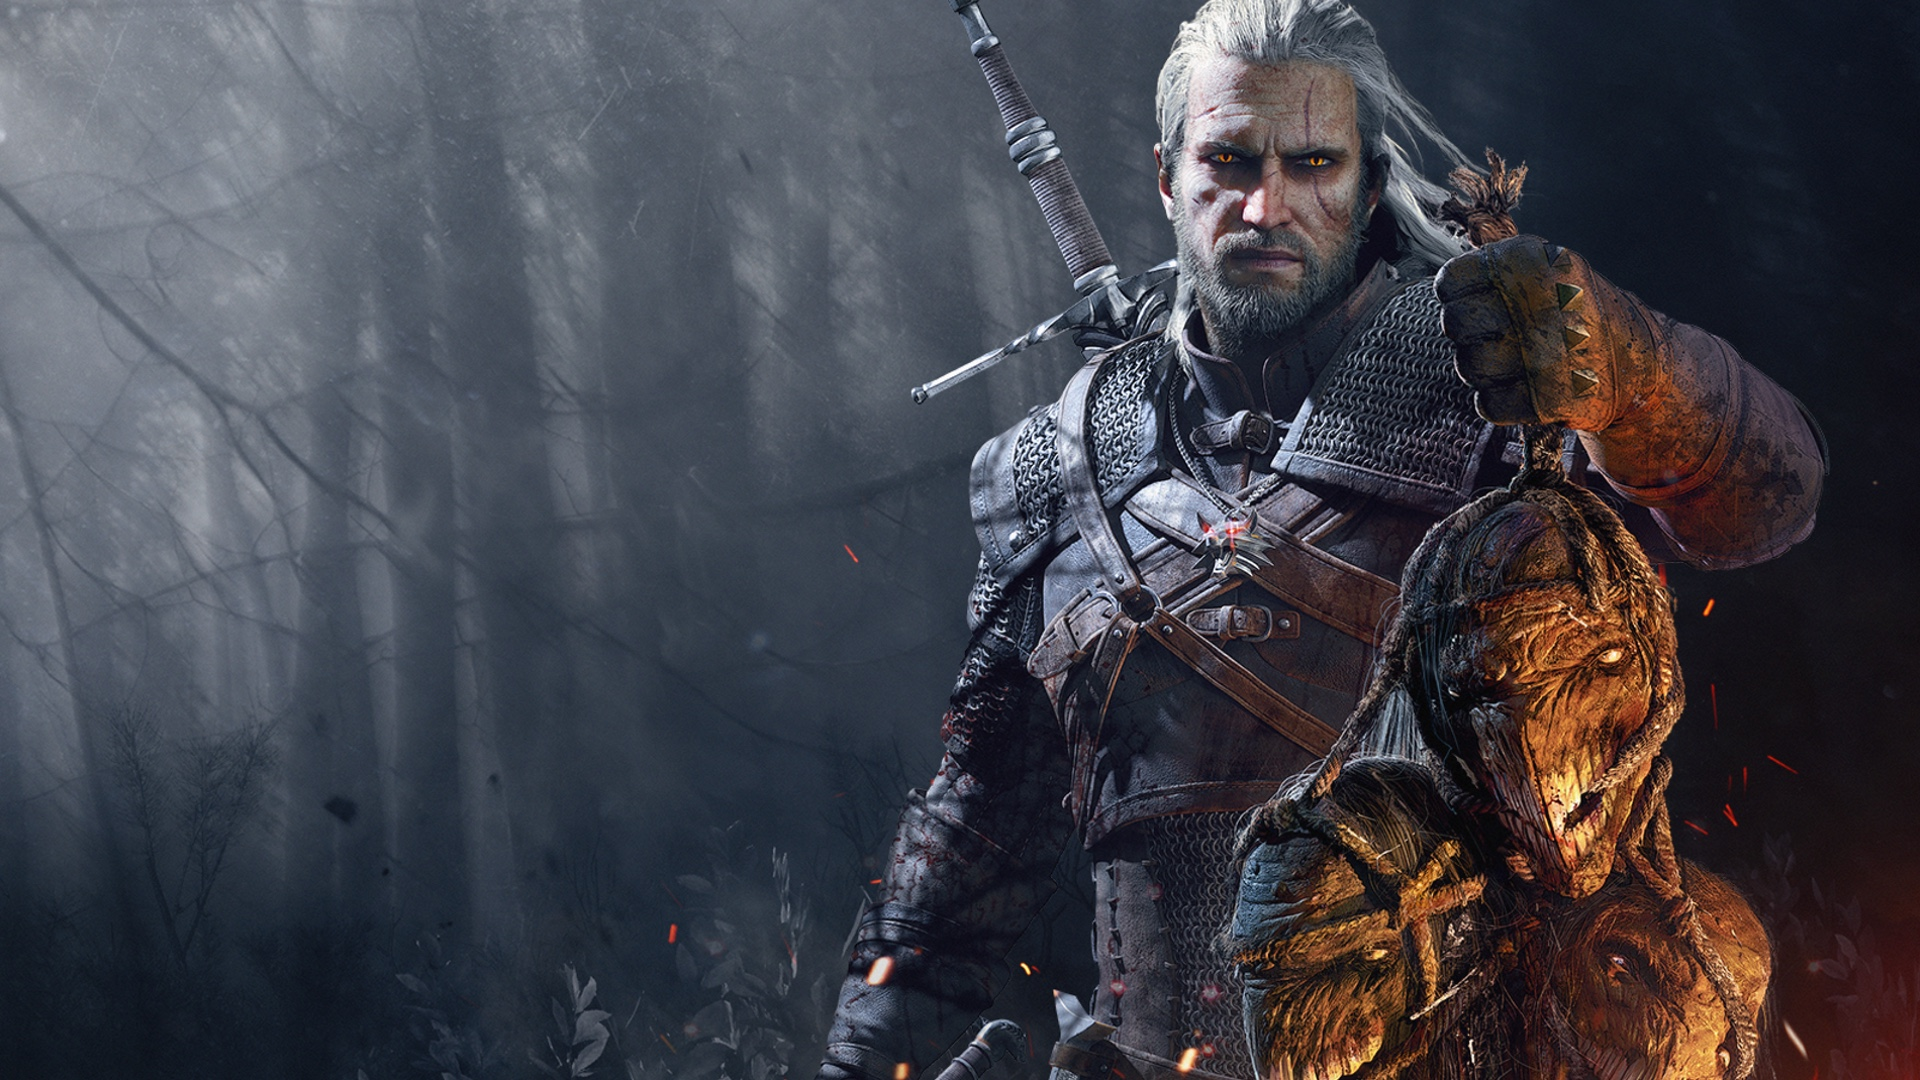 more-casting-news-for-netflixs-the-witcher-series-social.jpg